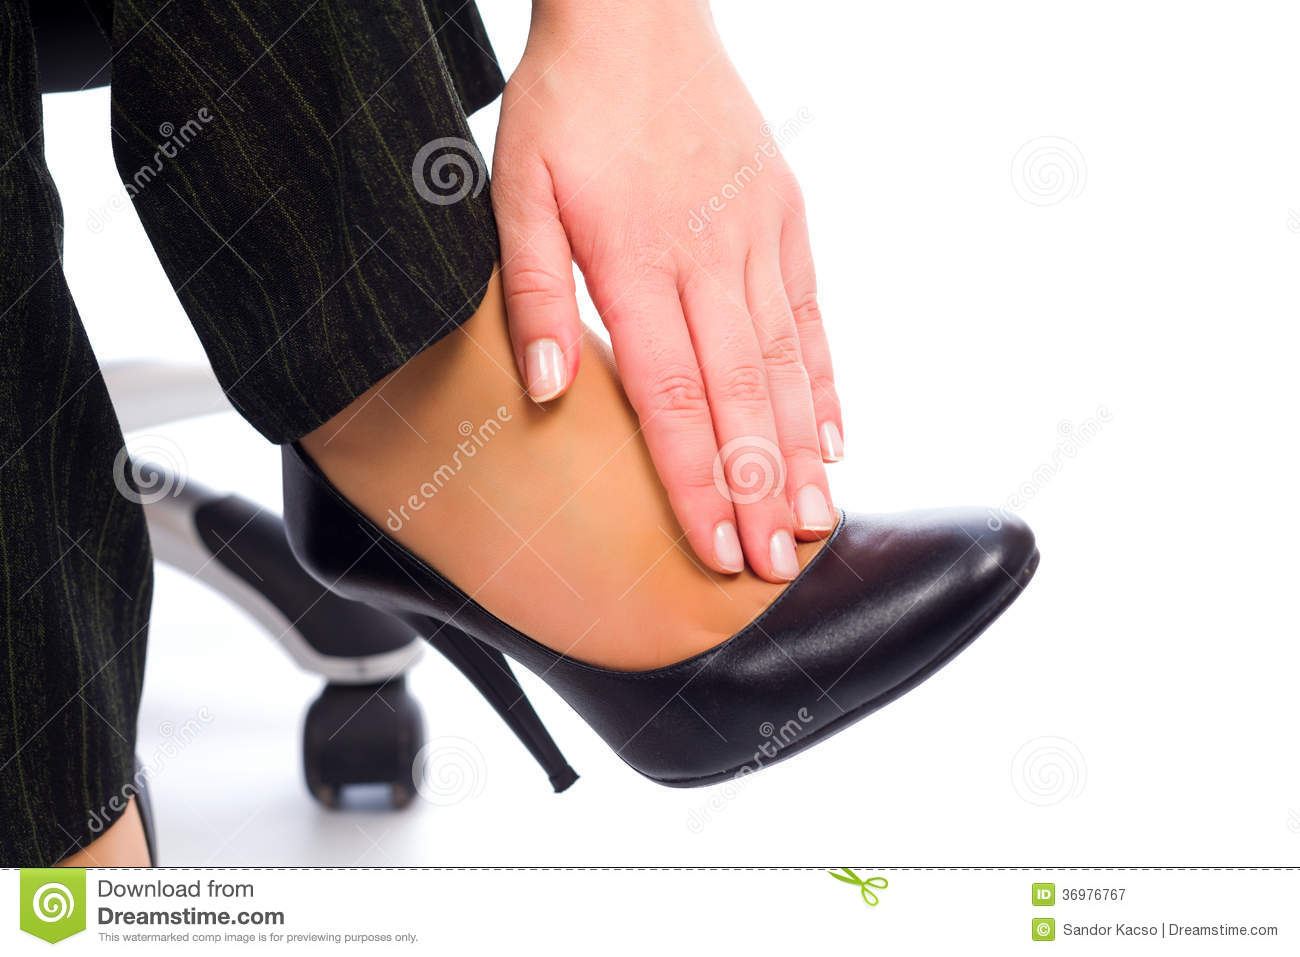 Why Do Women Wear High Heels If It Hurts? Stock Image ...